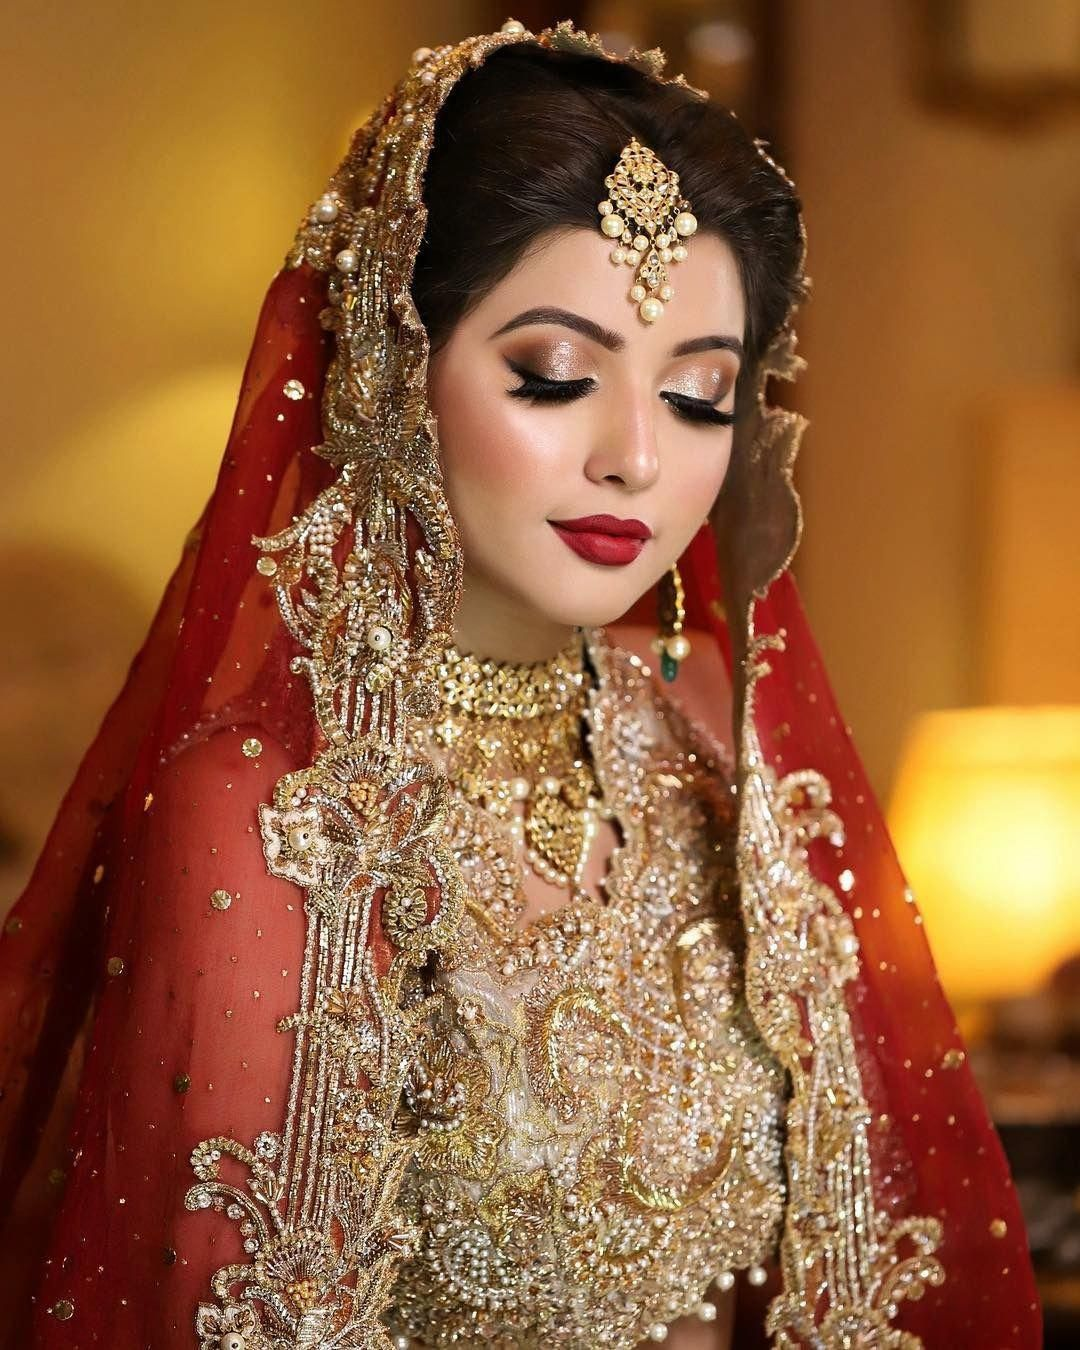 Soft Barat Bridal Makeup Look Inspo